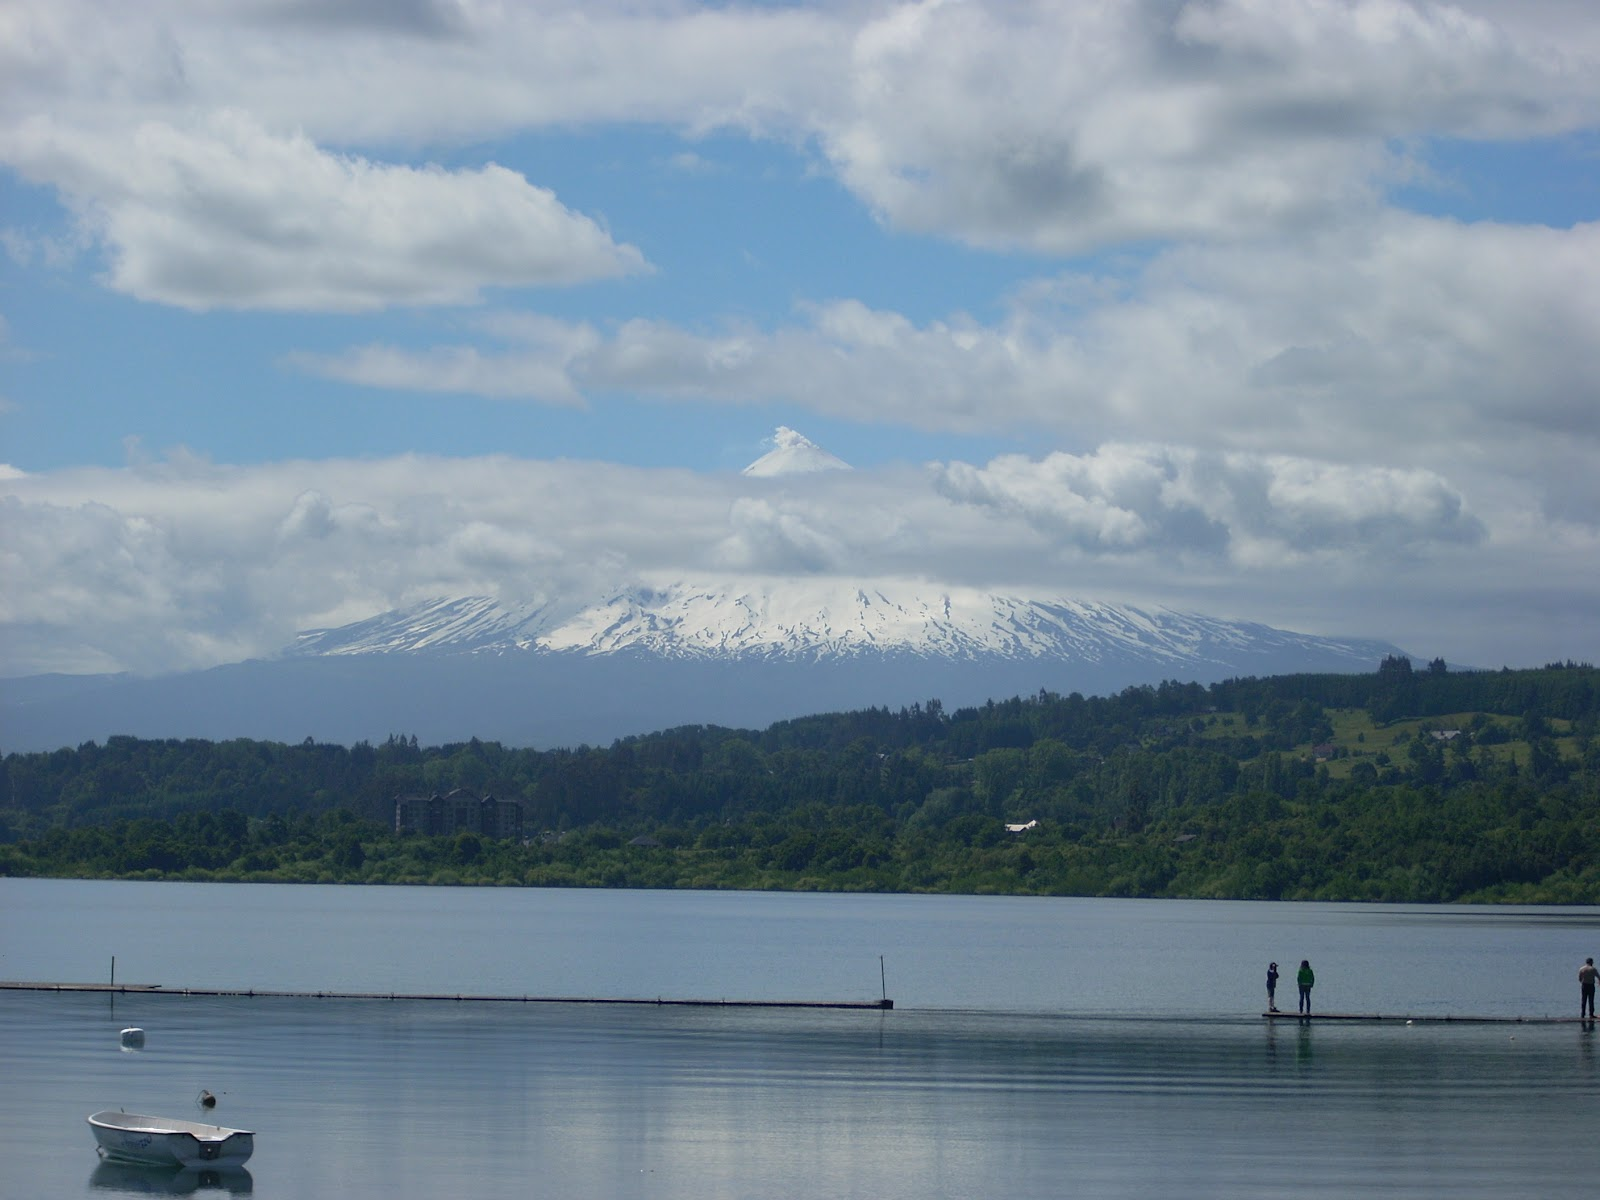 As much as you can see of Villaricca volcano - as ever, most mountains are shrouded in cloud.